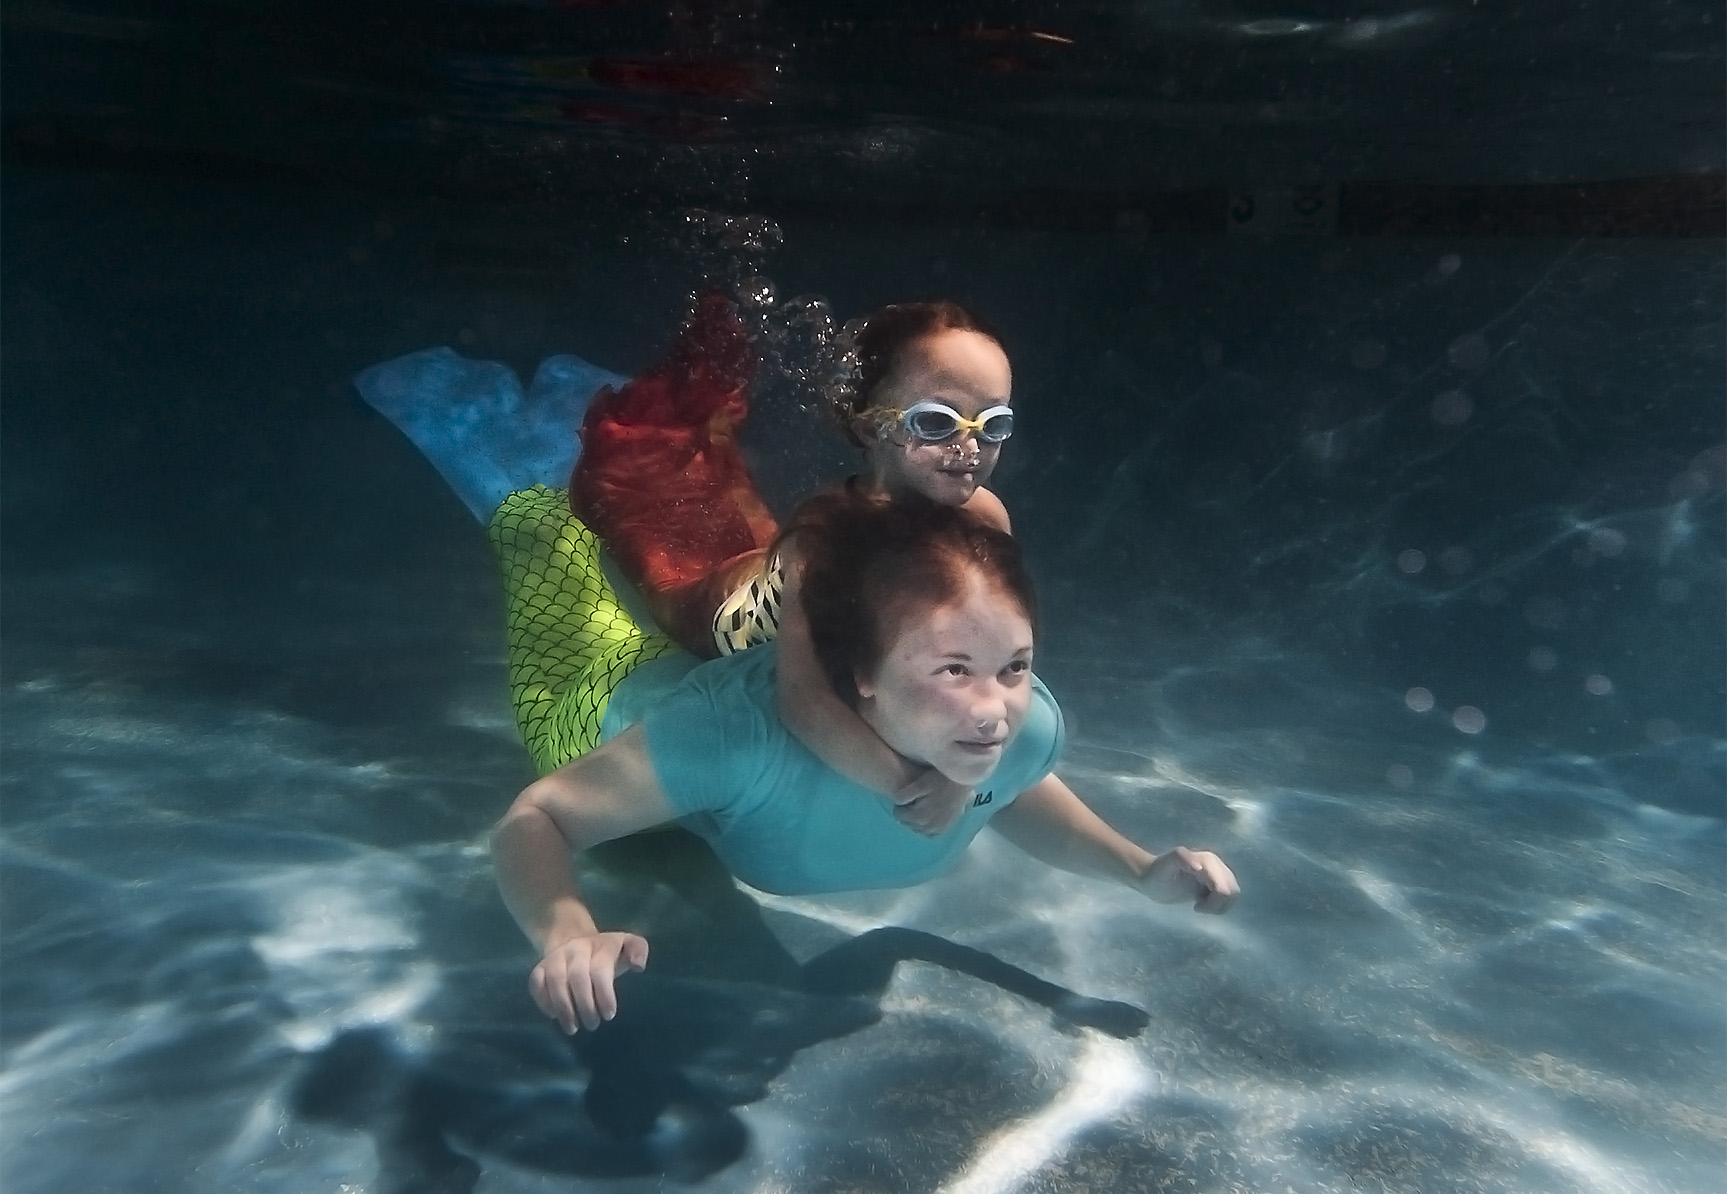 Charlotte Echols, 5, holds onto the neck of her swim instructor Julia Mortenson, 19, as they cross the pool underwater in mermaid swimsuits at the Mermaid Swim School located on Northpark Road in Colorado Springs on Thursday, July 23, 2015. The swim school offers mermaid classes to little kids and a monthly siren swim for adults who want to play in a pool wearing a mermaid tail.